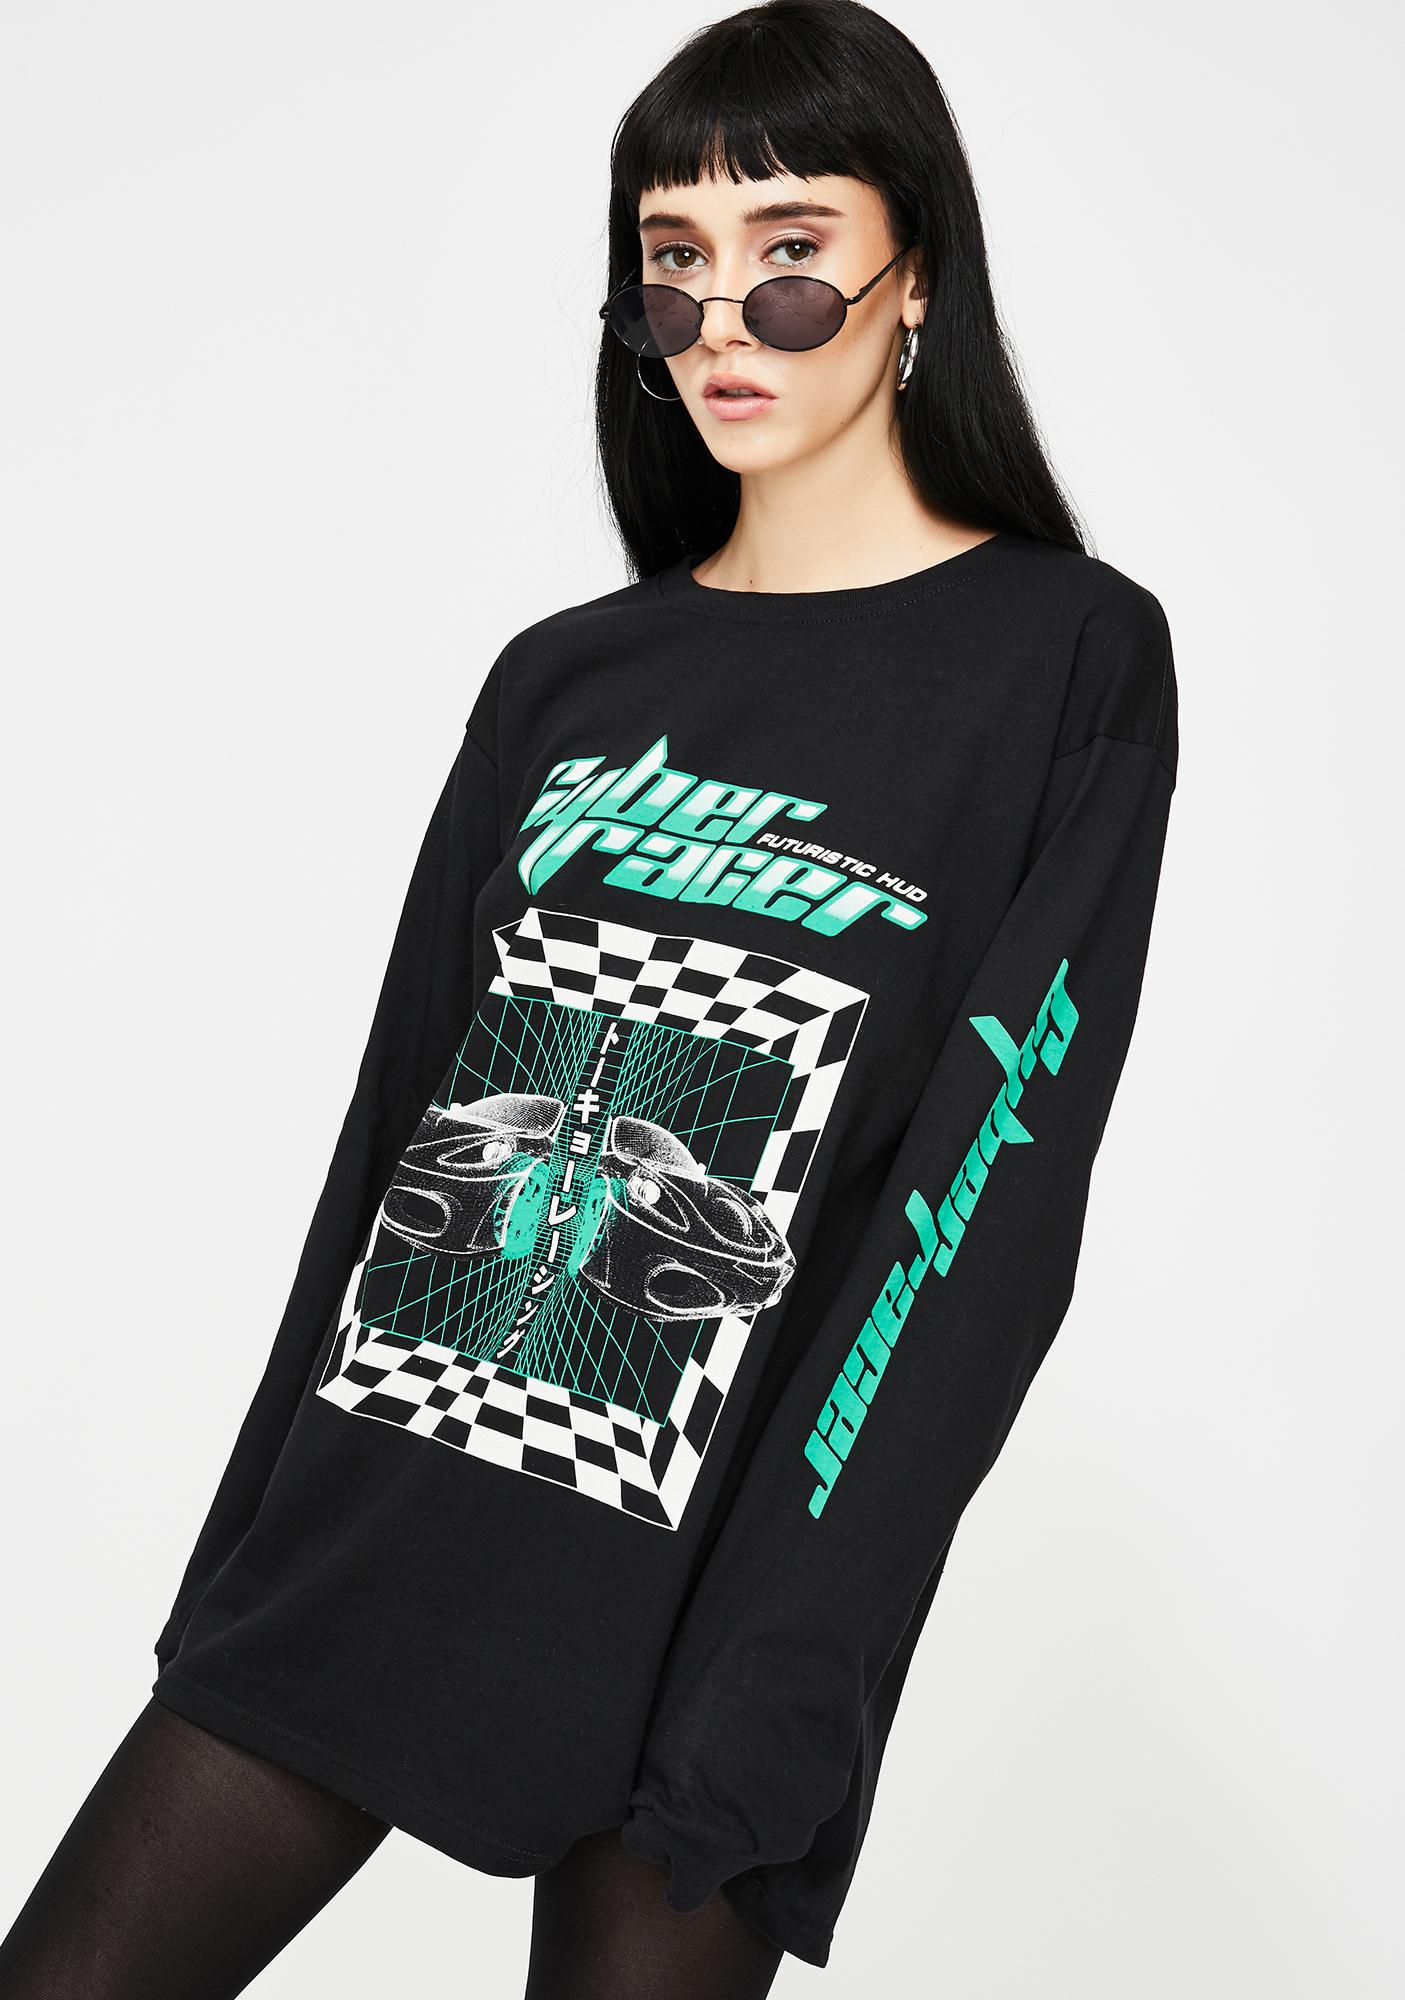 ILL INTENT Cyber Racer Long Sleeve Tee